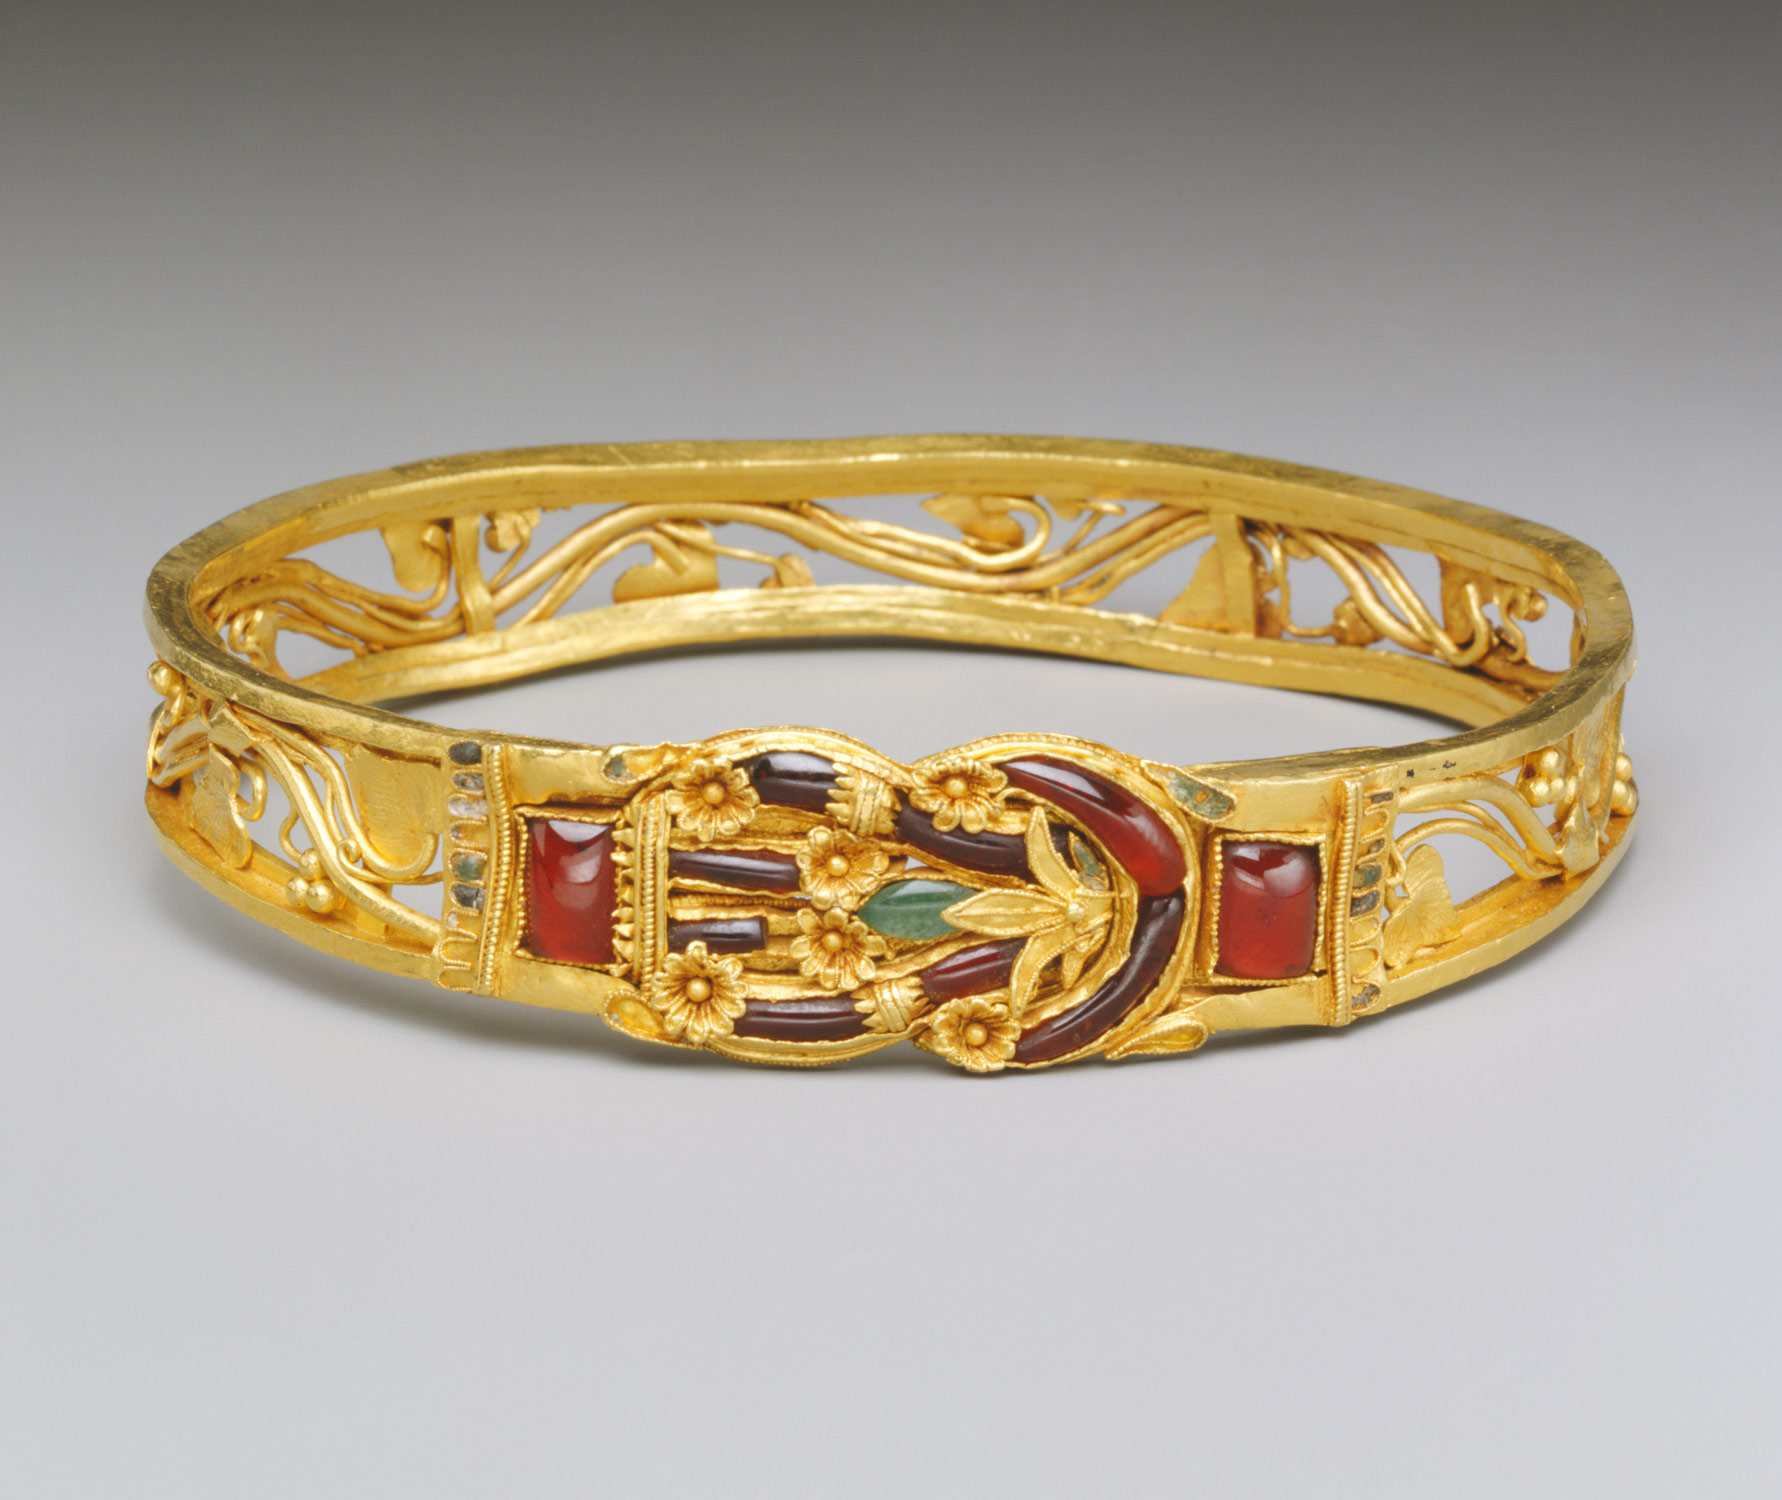 Gold armband with Herakles knot Work of Art Heilbrunn Timeline